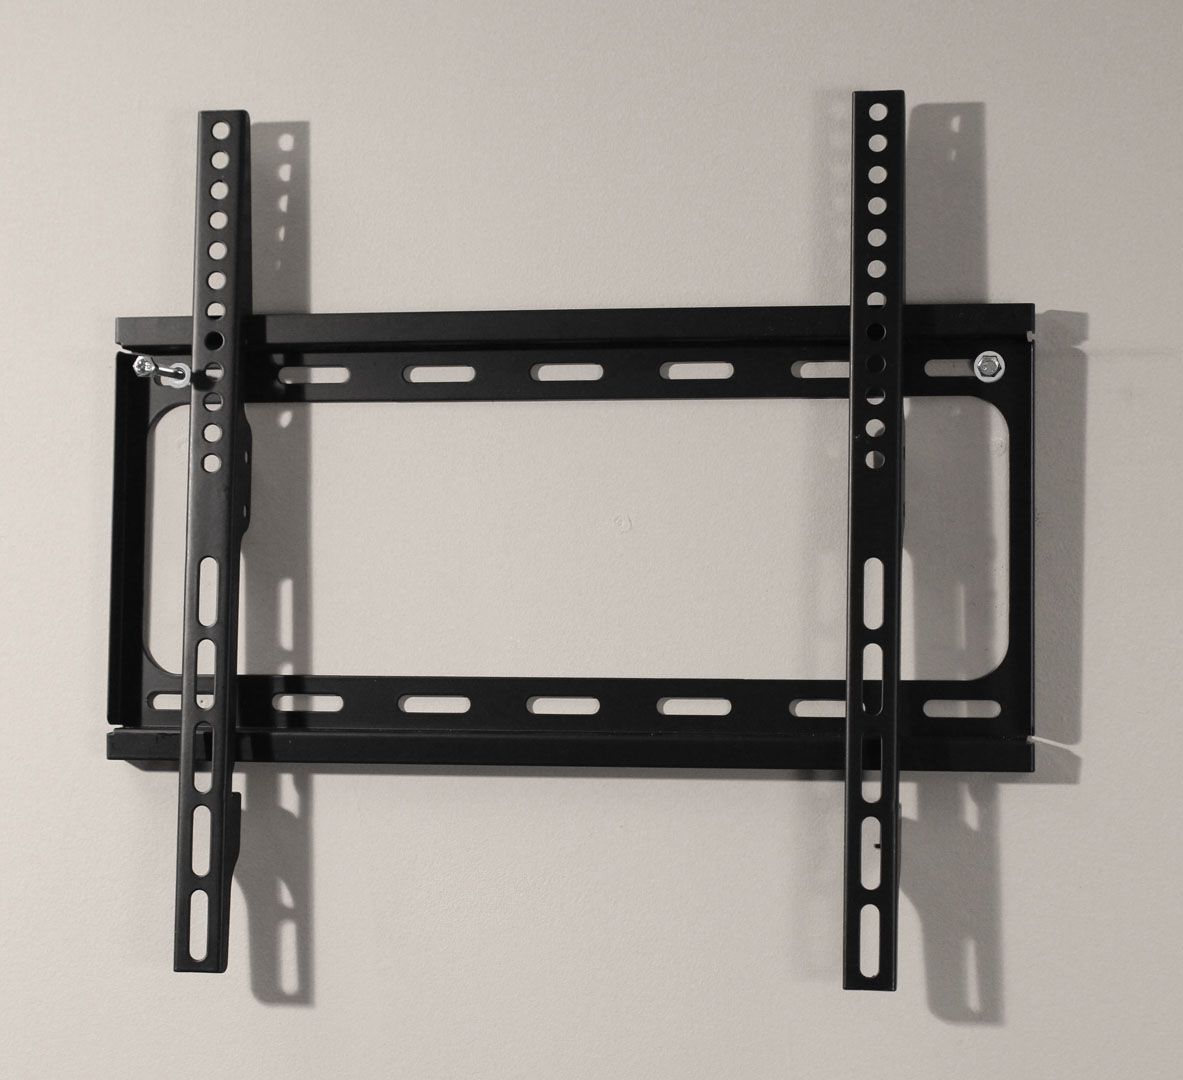 Picture of Install a Standard Flat Wall Mount